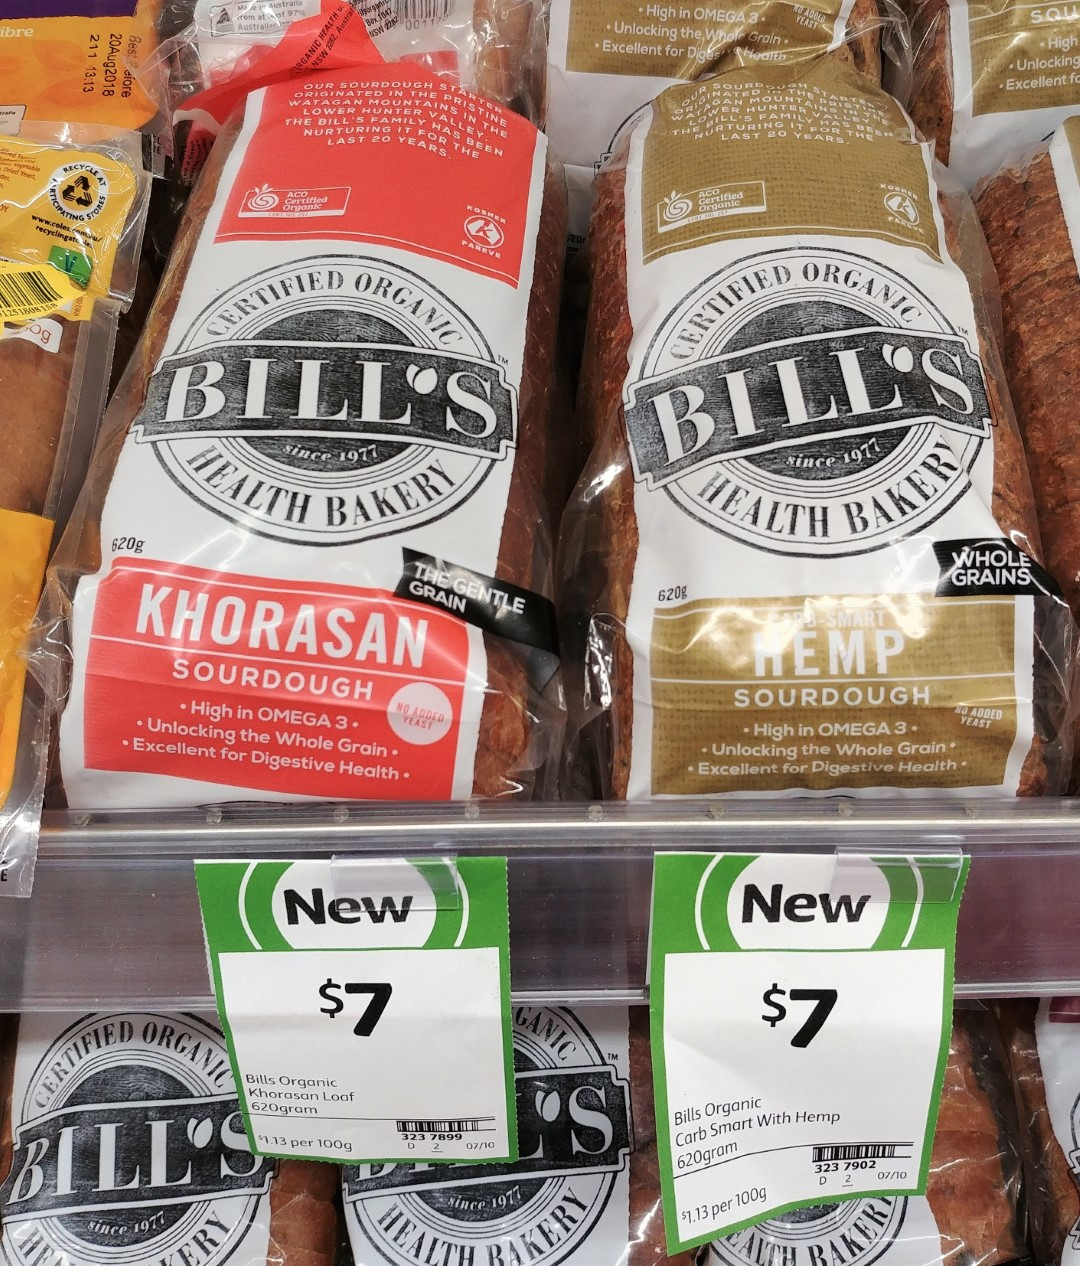 New On The Shelf At Coles 29th August 2018 New Products Australia